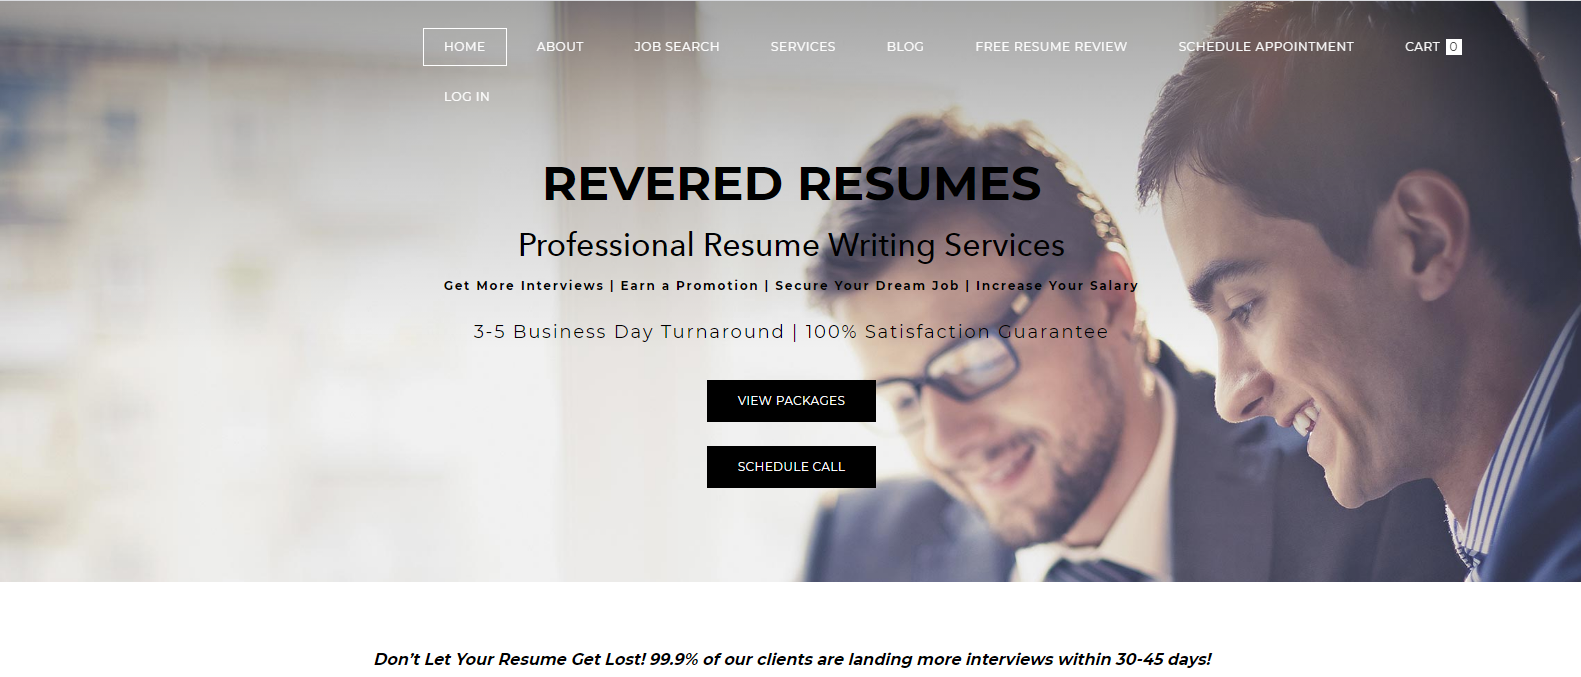 Best Sales Resume Services - Screenshot of Revered Resumes Homepage